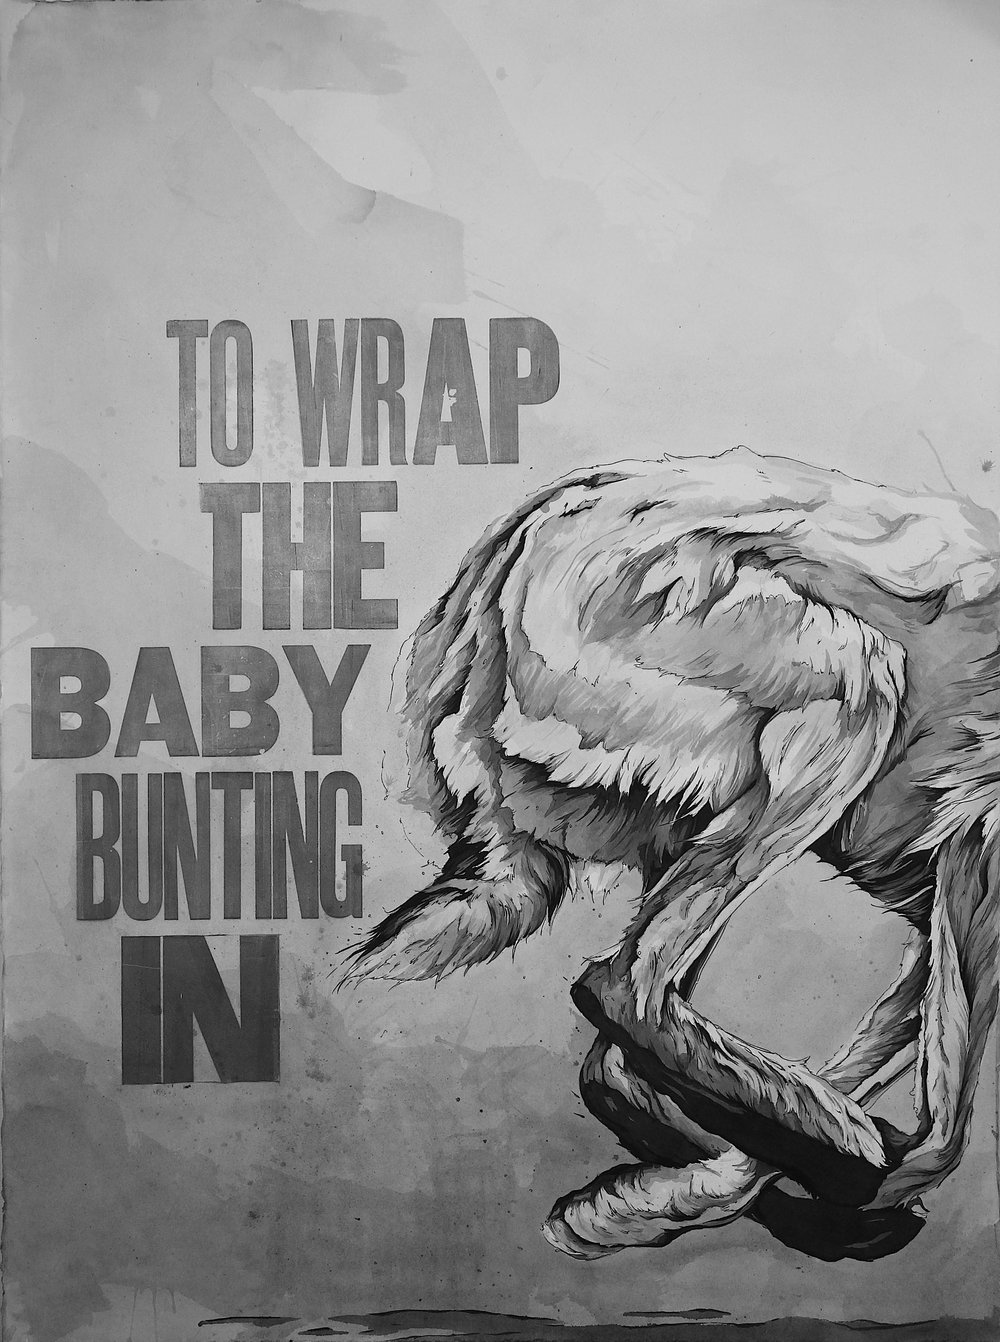 4To Wrap the Baby Bunting in.JPG